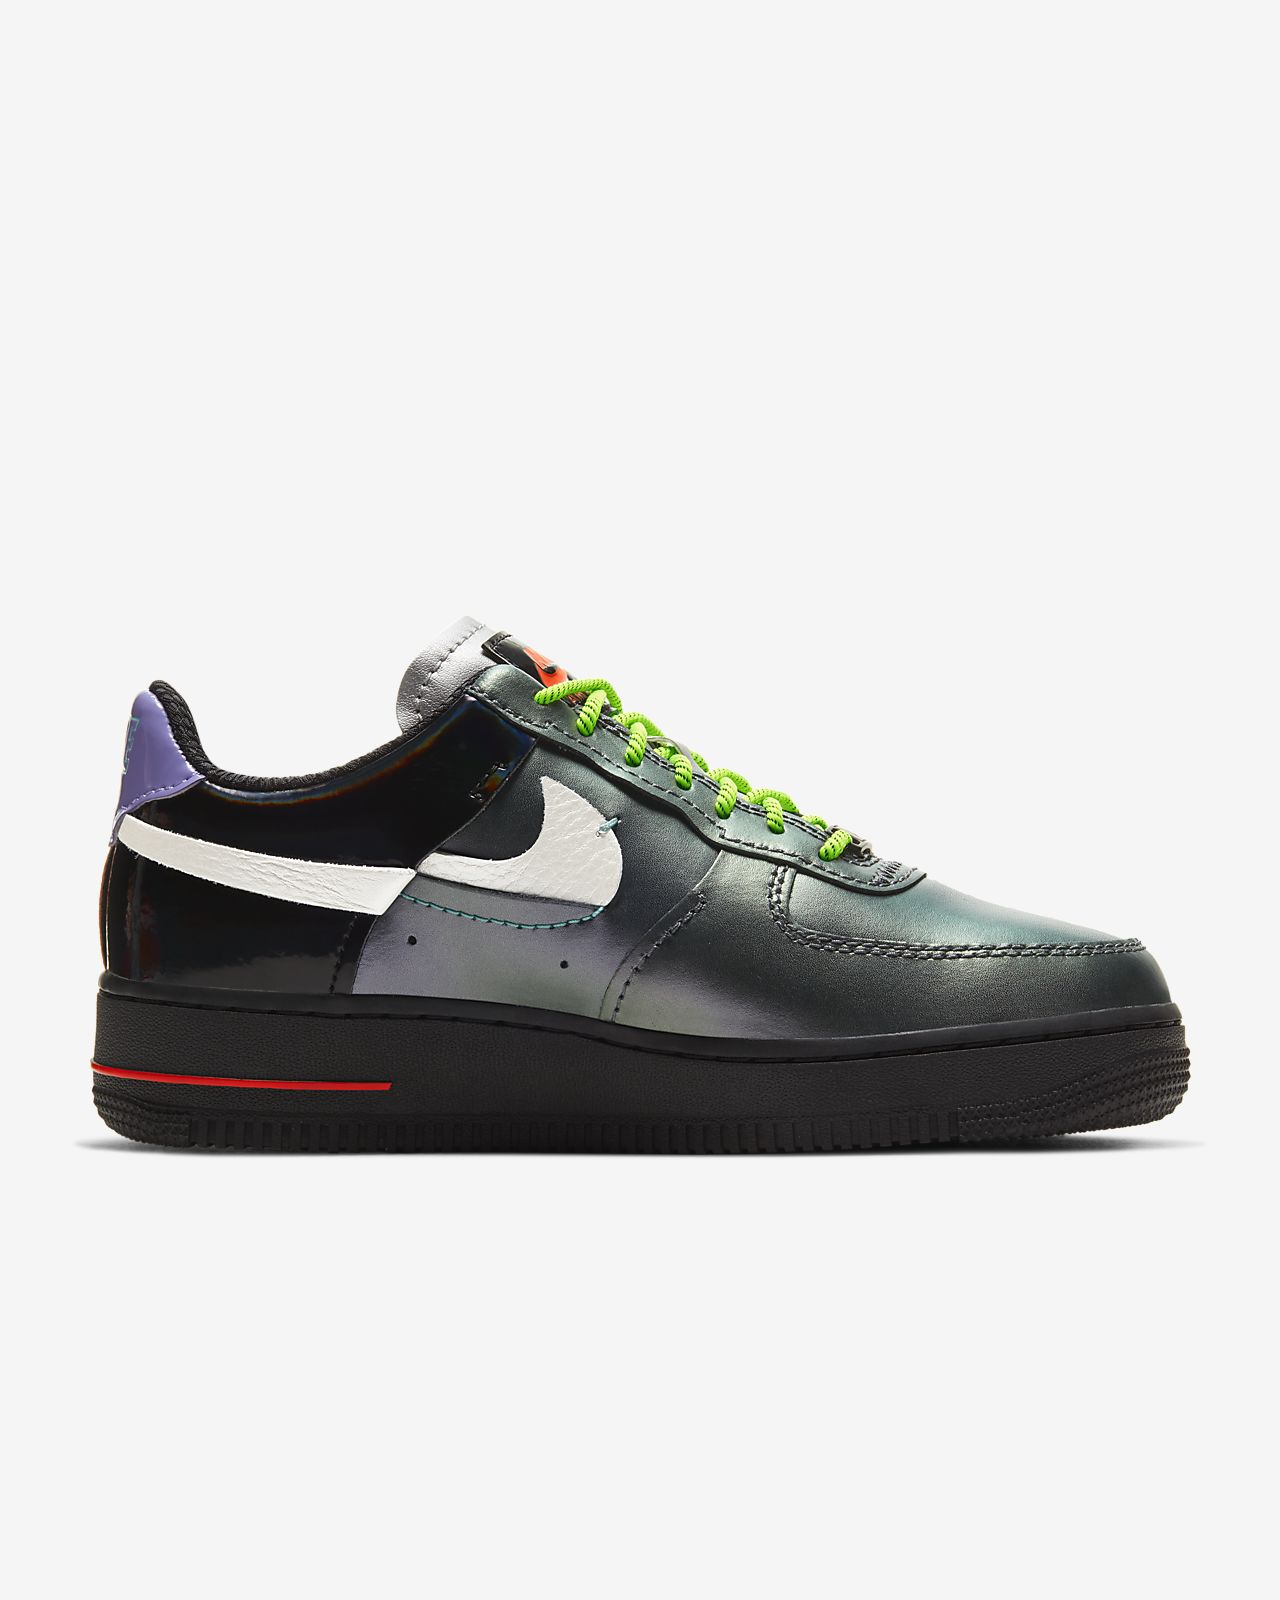 Angebot Special von Nike Schuhe Sale: Nike Air Force 1 07 LX